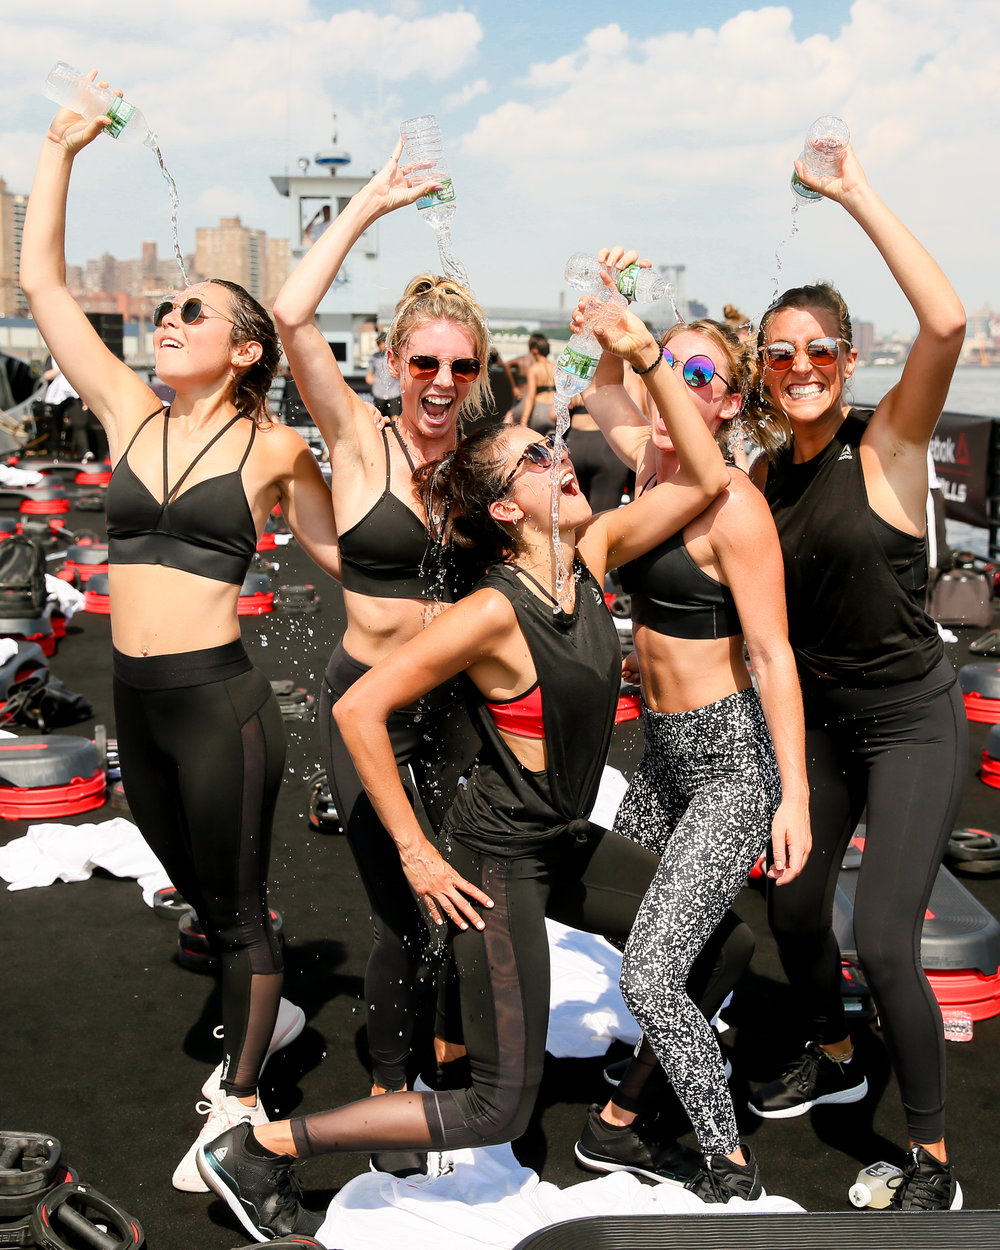 All About My Day With Reebok and Nina Dobrev Esther Santer Fashion Blog NYC Street Style Blogger Outfit OOTD Trendy Workout Gear Moving Barge Trainers Celebrity Ambassador Brunch The Vampire Diaries Celeb GRIT Girl Squad Women Weights Body  Bodyflow.jpg